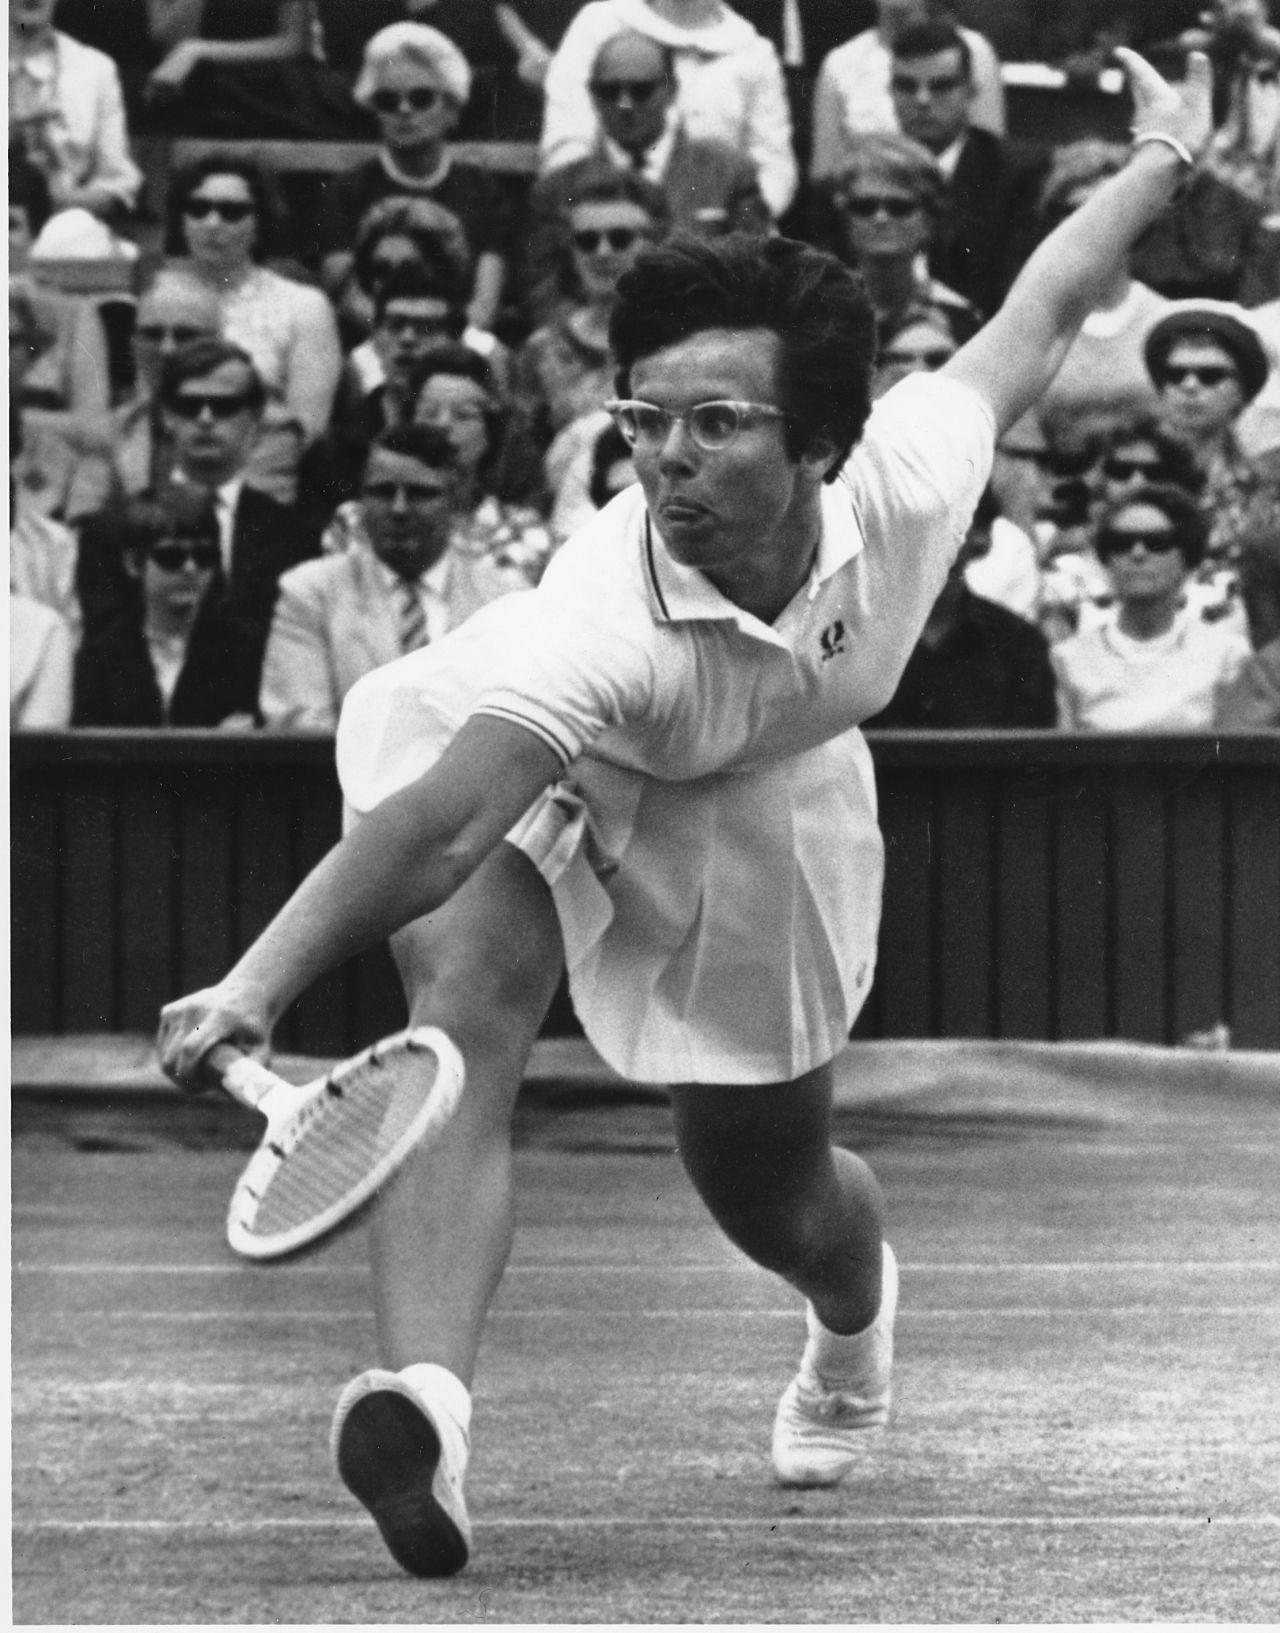 images Billie Jean King 12 Grand Slam singles titles